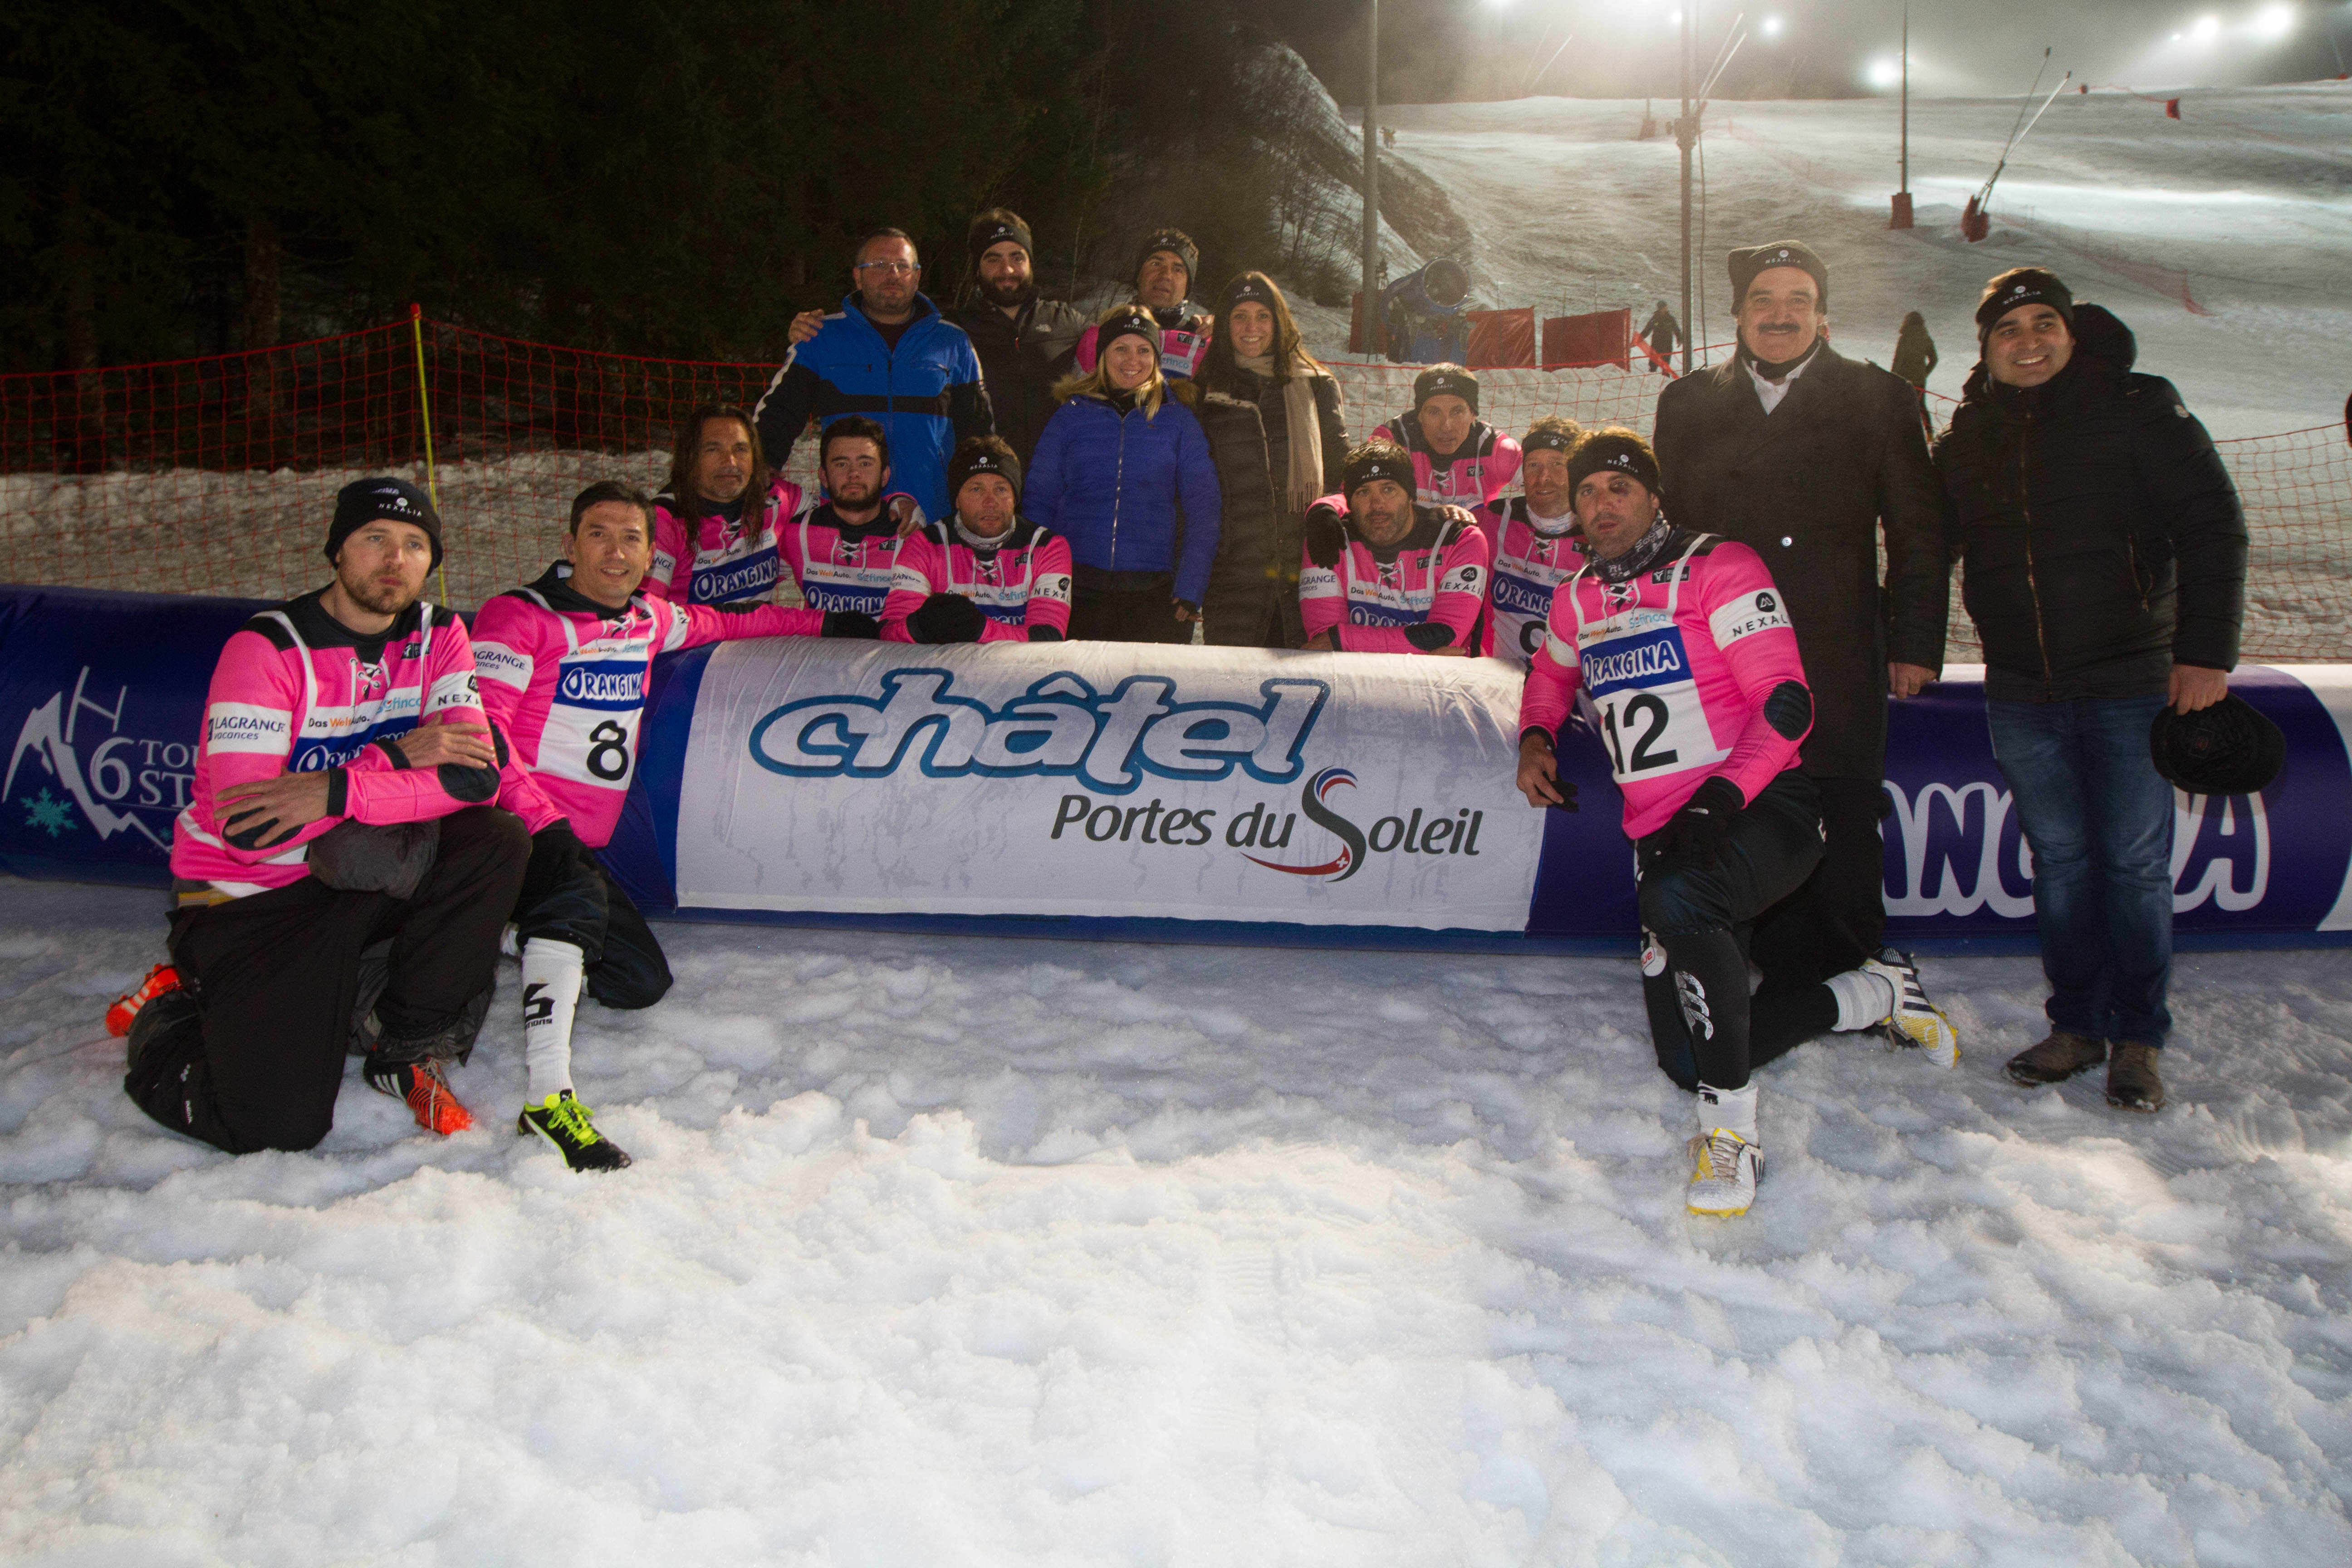 Equipe Châtel Tournoi 6 Stations Hiver 2018